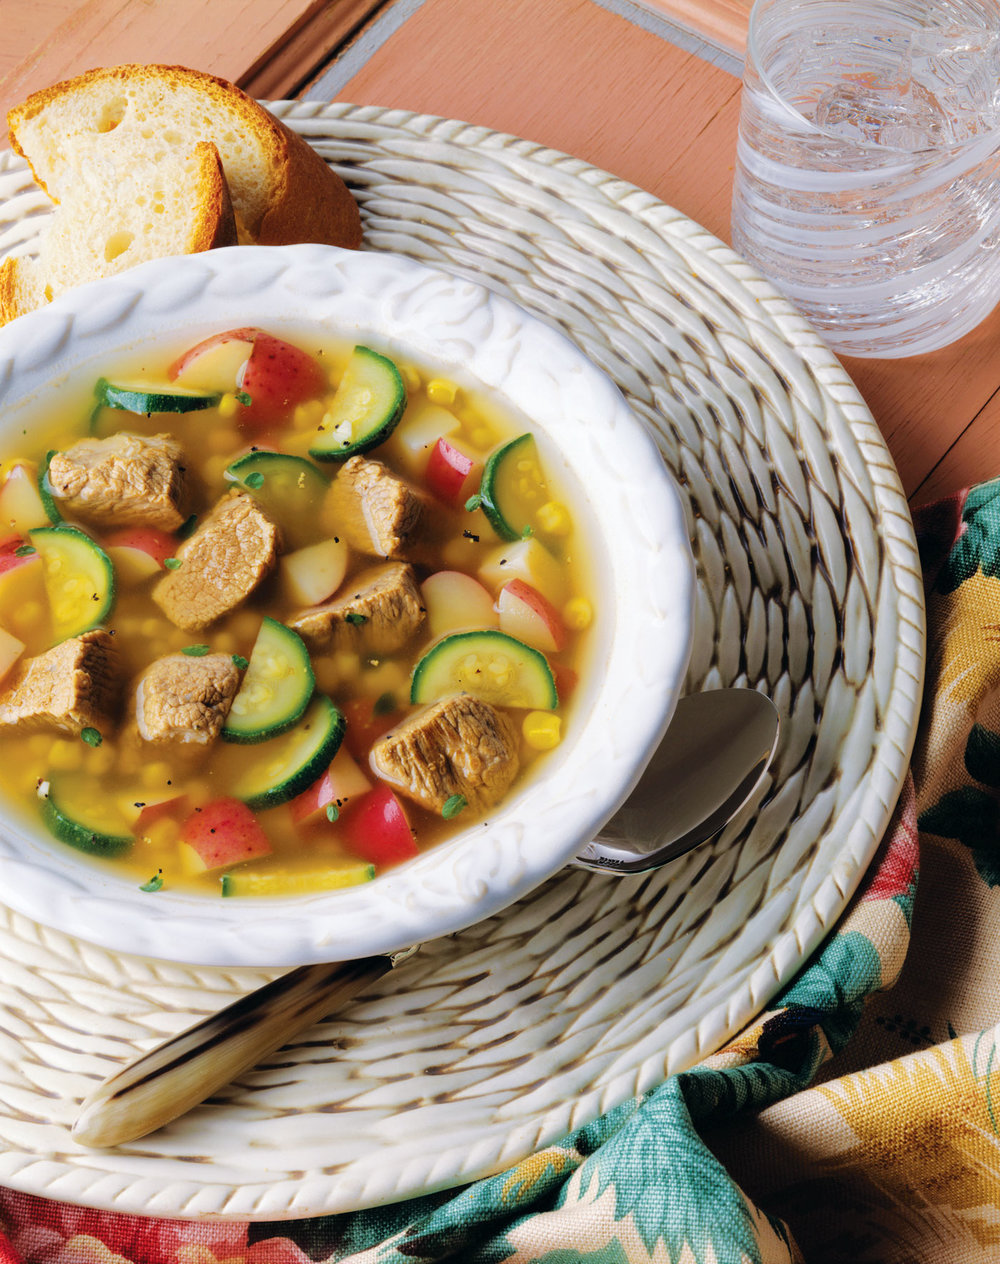 veal_and_vegetable_soup.jpg